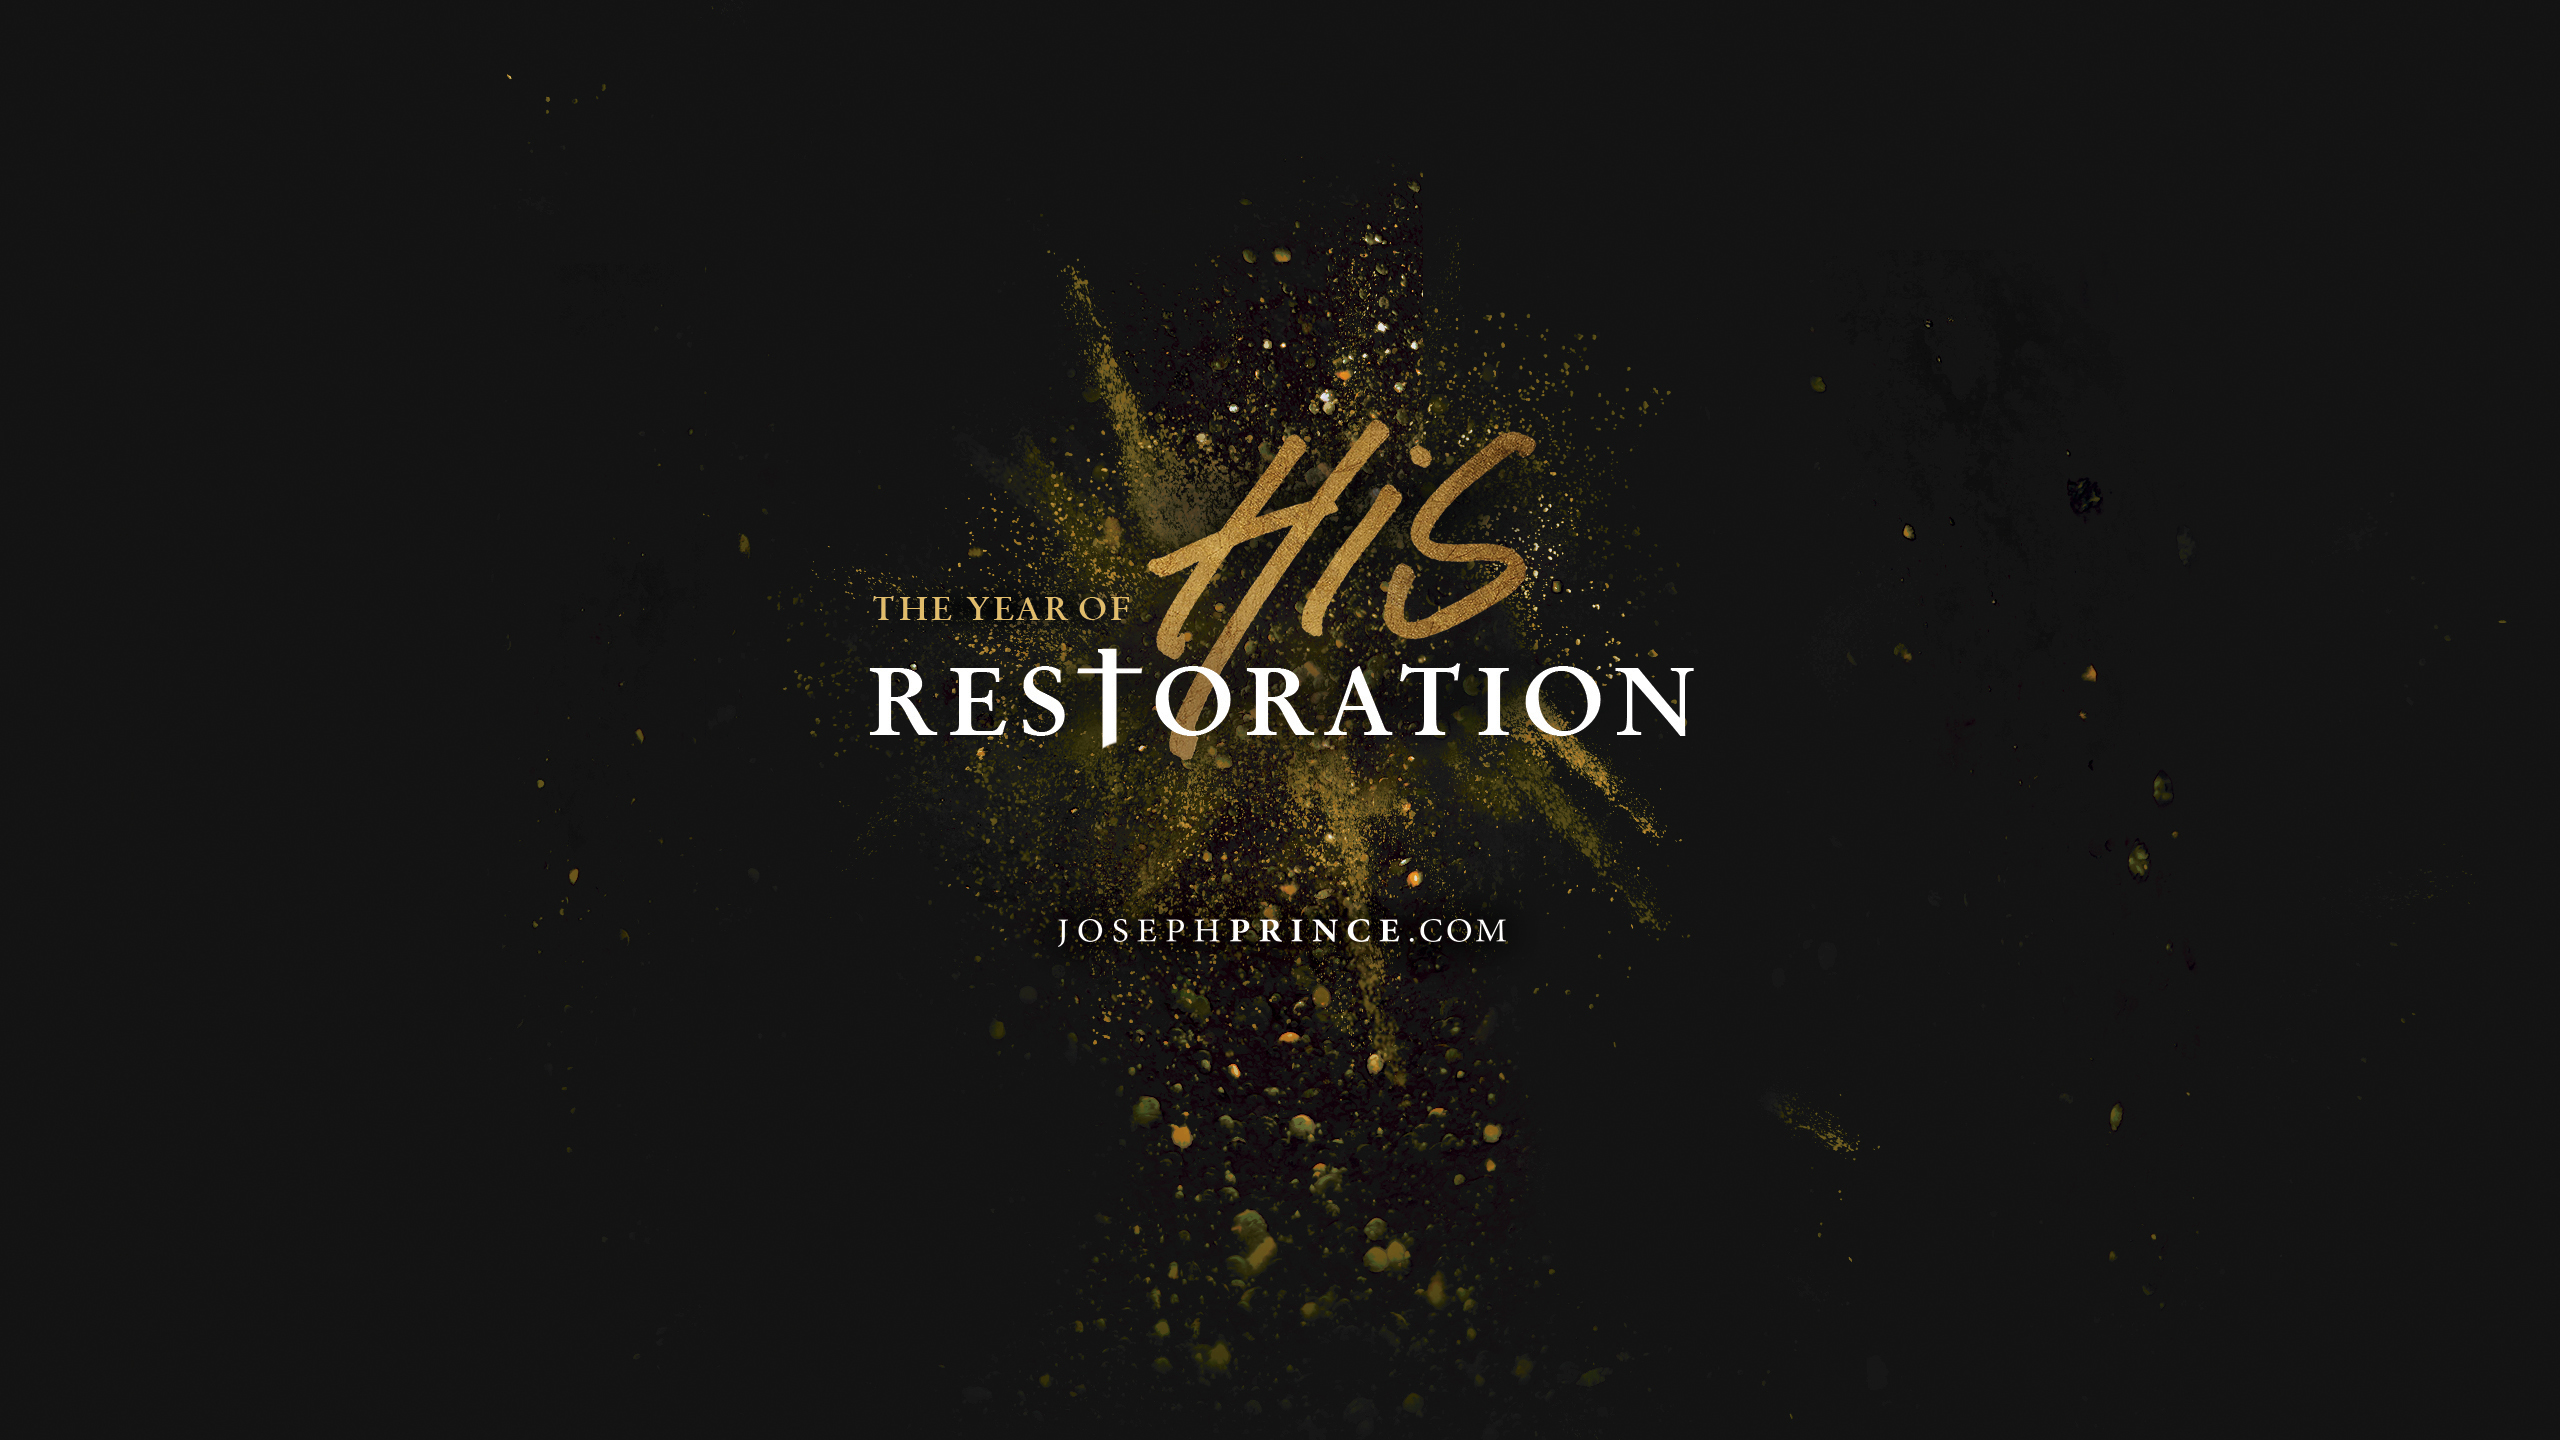 The Who Iphone Wallpaper Josephprince Com The Year Of His Restoration